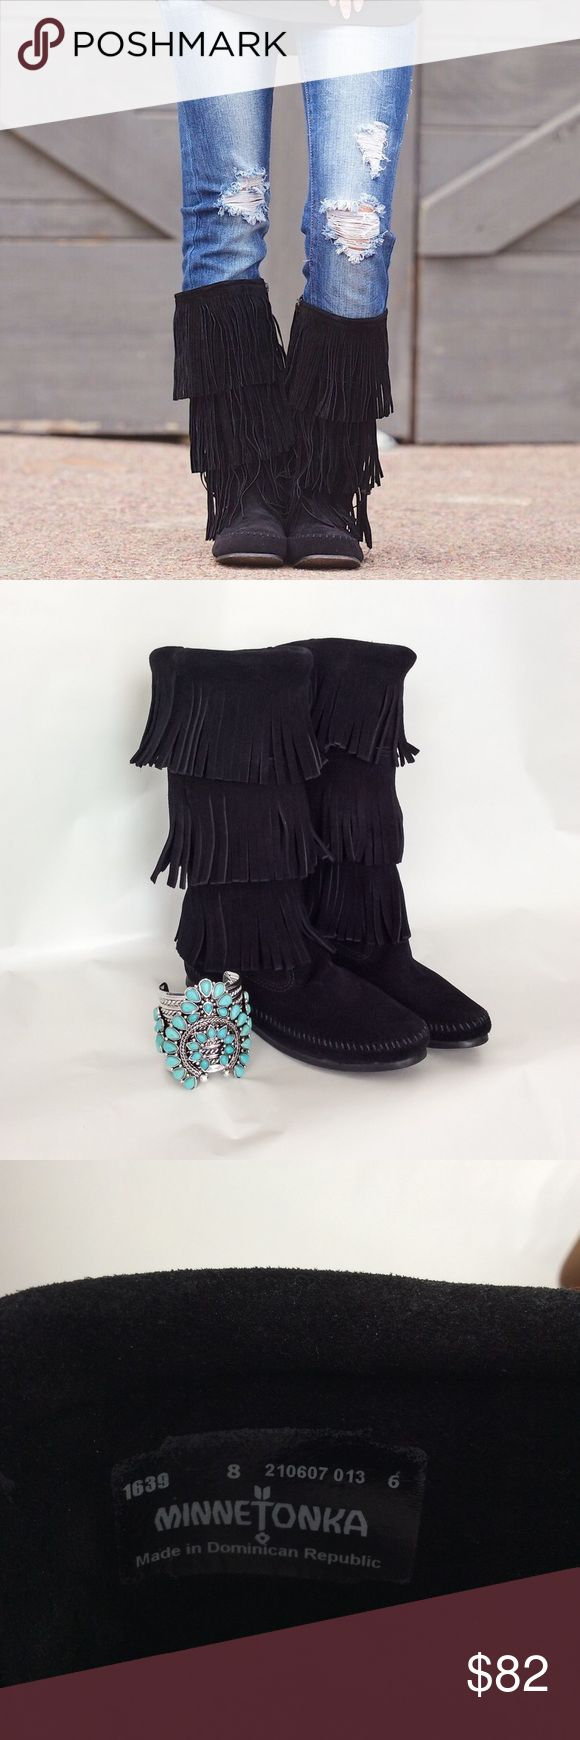 Minnetonka Suede Fringe Boots New in Box Sz 8/8.5 Brand new in the box Minnetonka Black 3 layer Fringe suede moccasin style boots. Pull on, no zipper. 100% Authentic. Size 8, these come in whole sizes only so they also fit an 8.5 Minnetonka Shoes